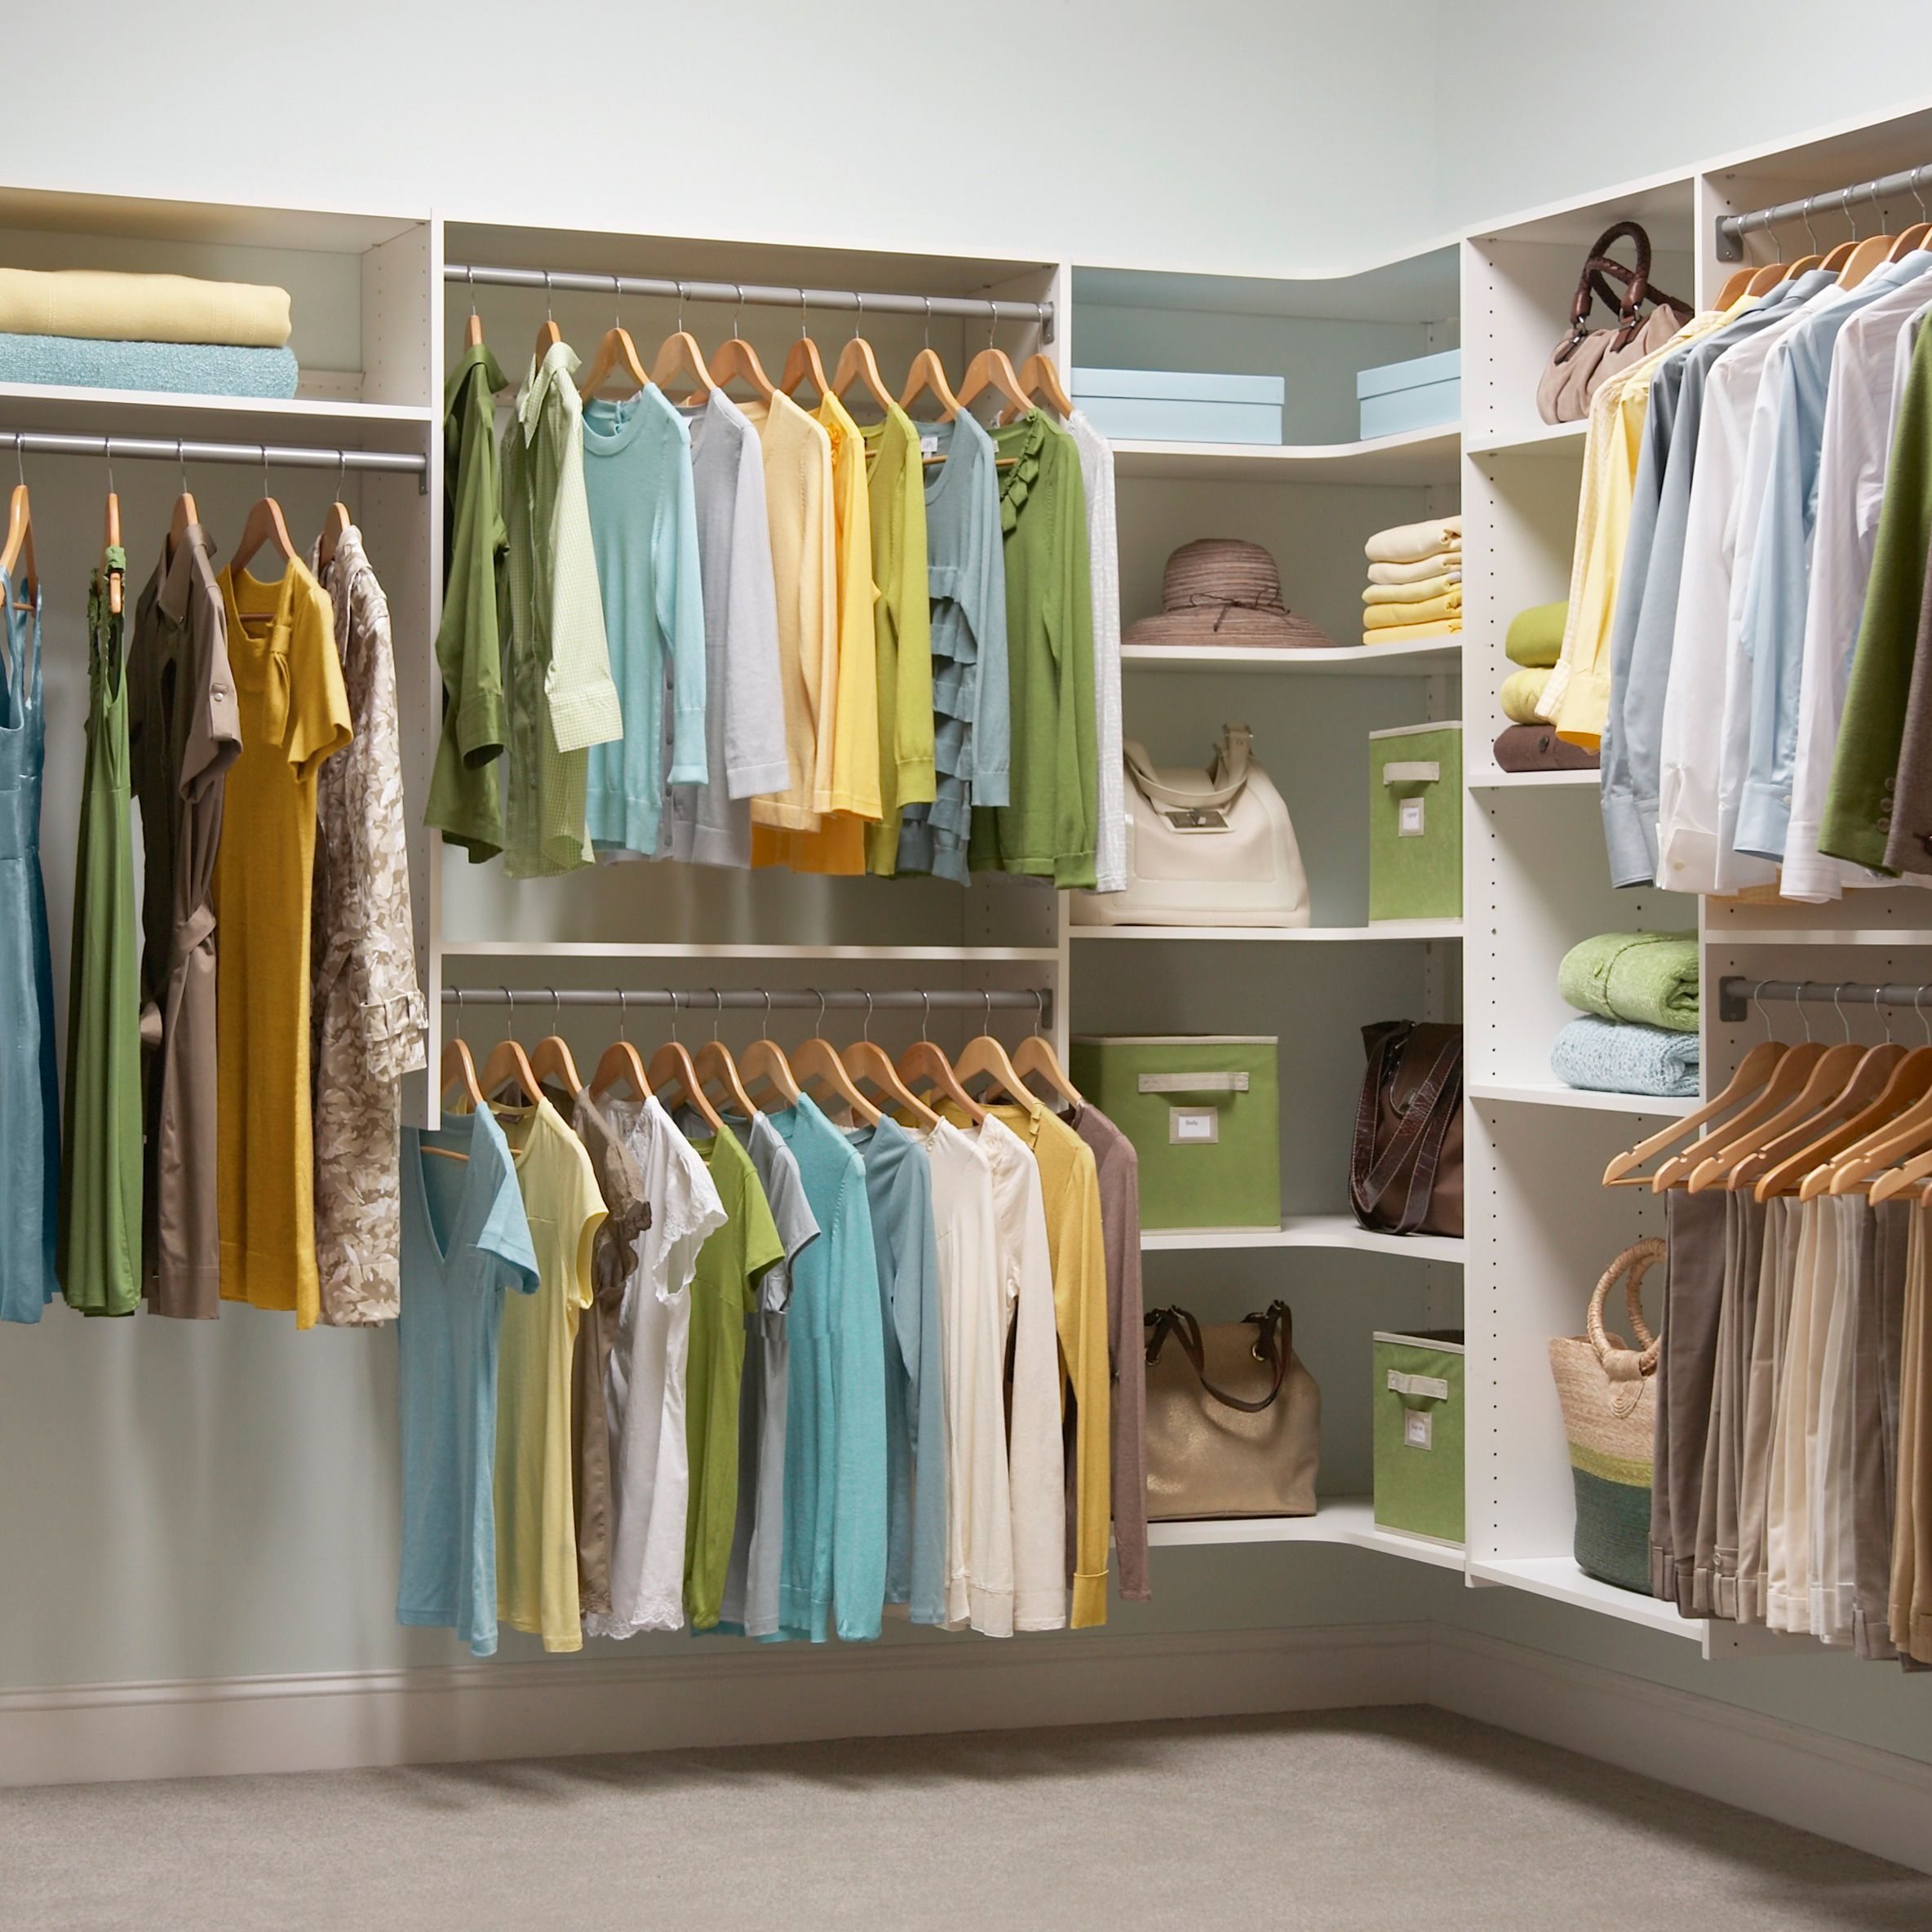 4 Ways To Think Outside The Closet Closet Makeover Closet Remodel Bedroom Closet Design